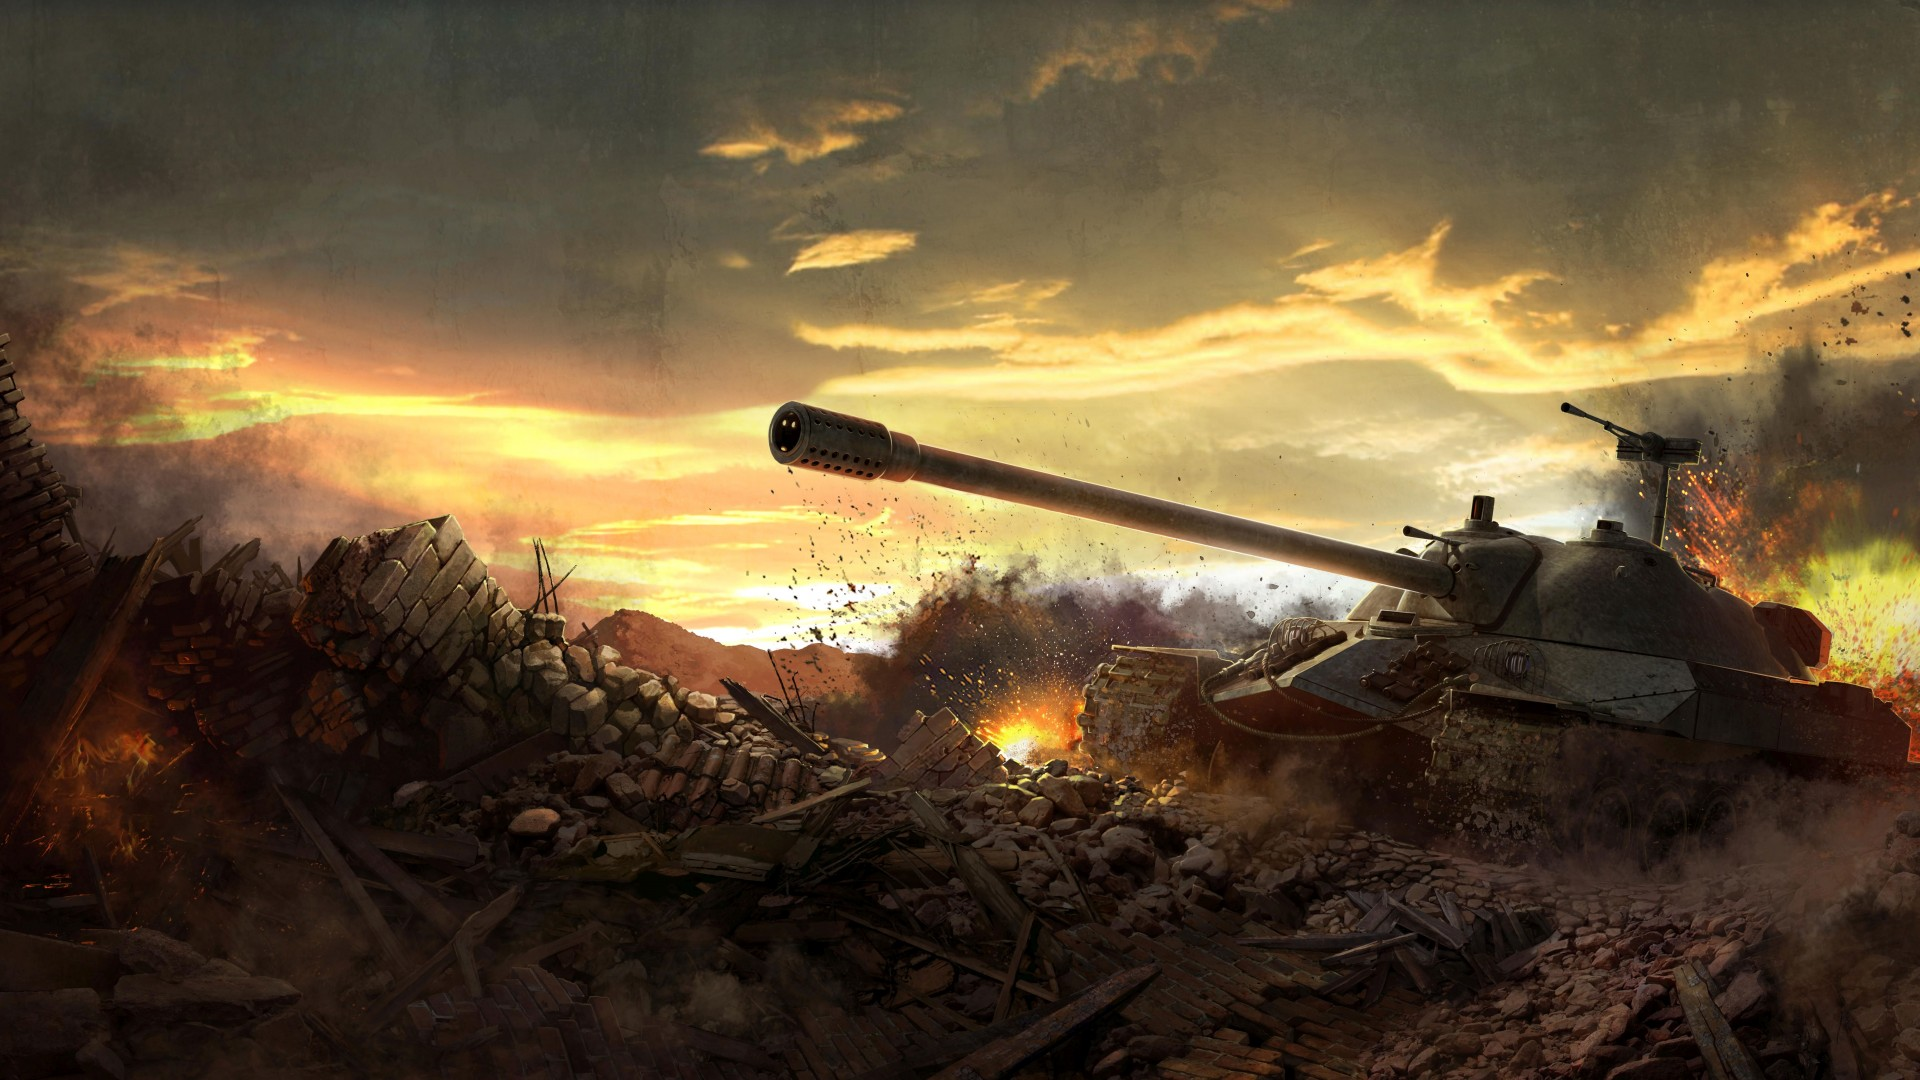 Тактика и стратегия игры в World Of Tanks.